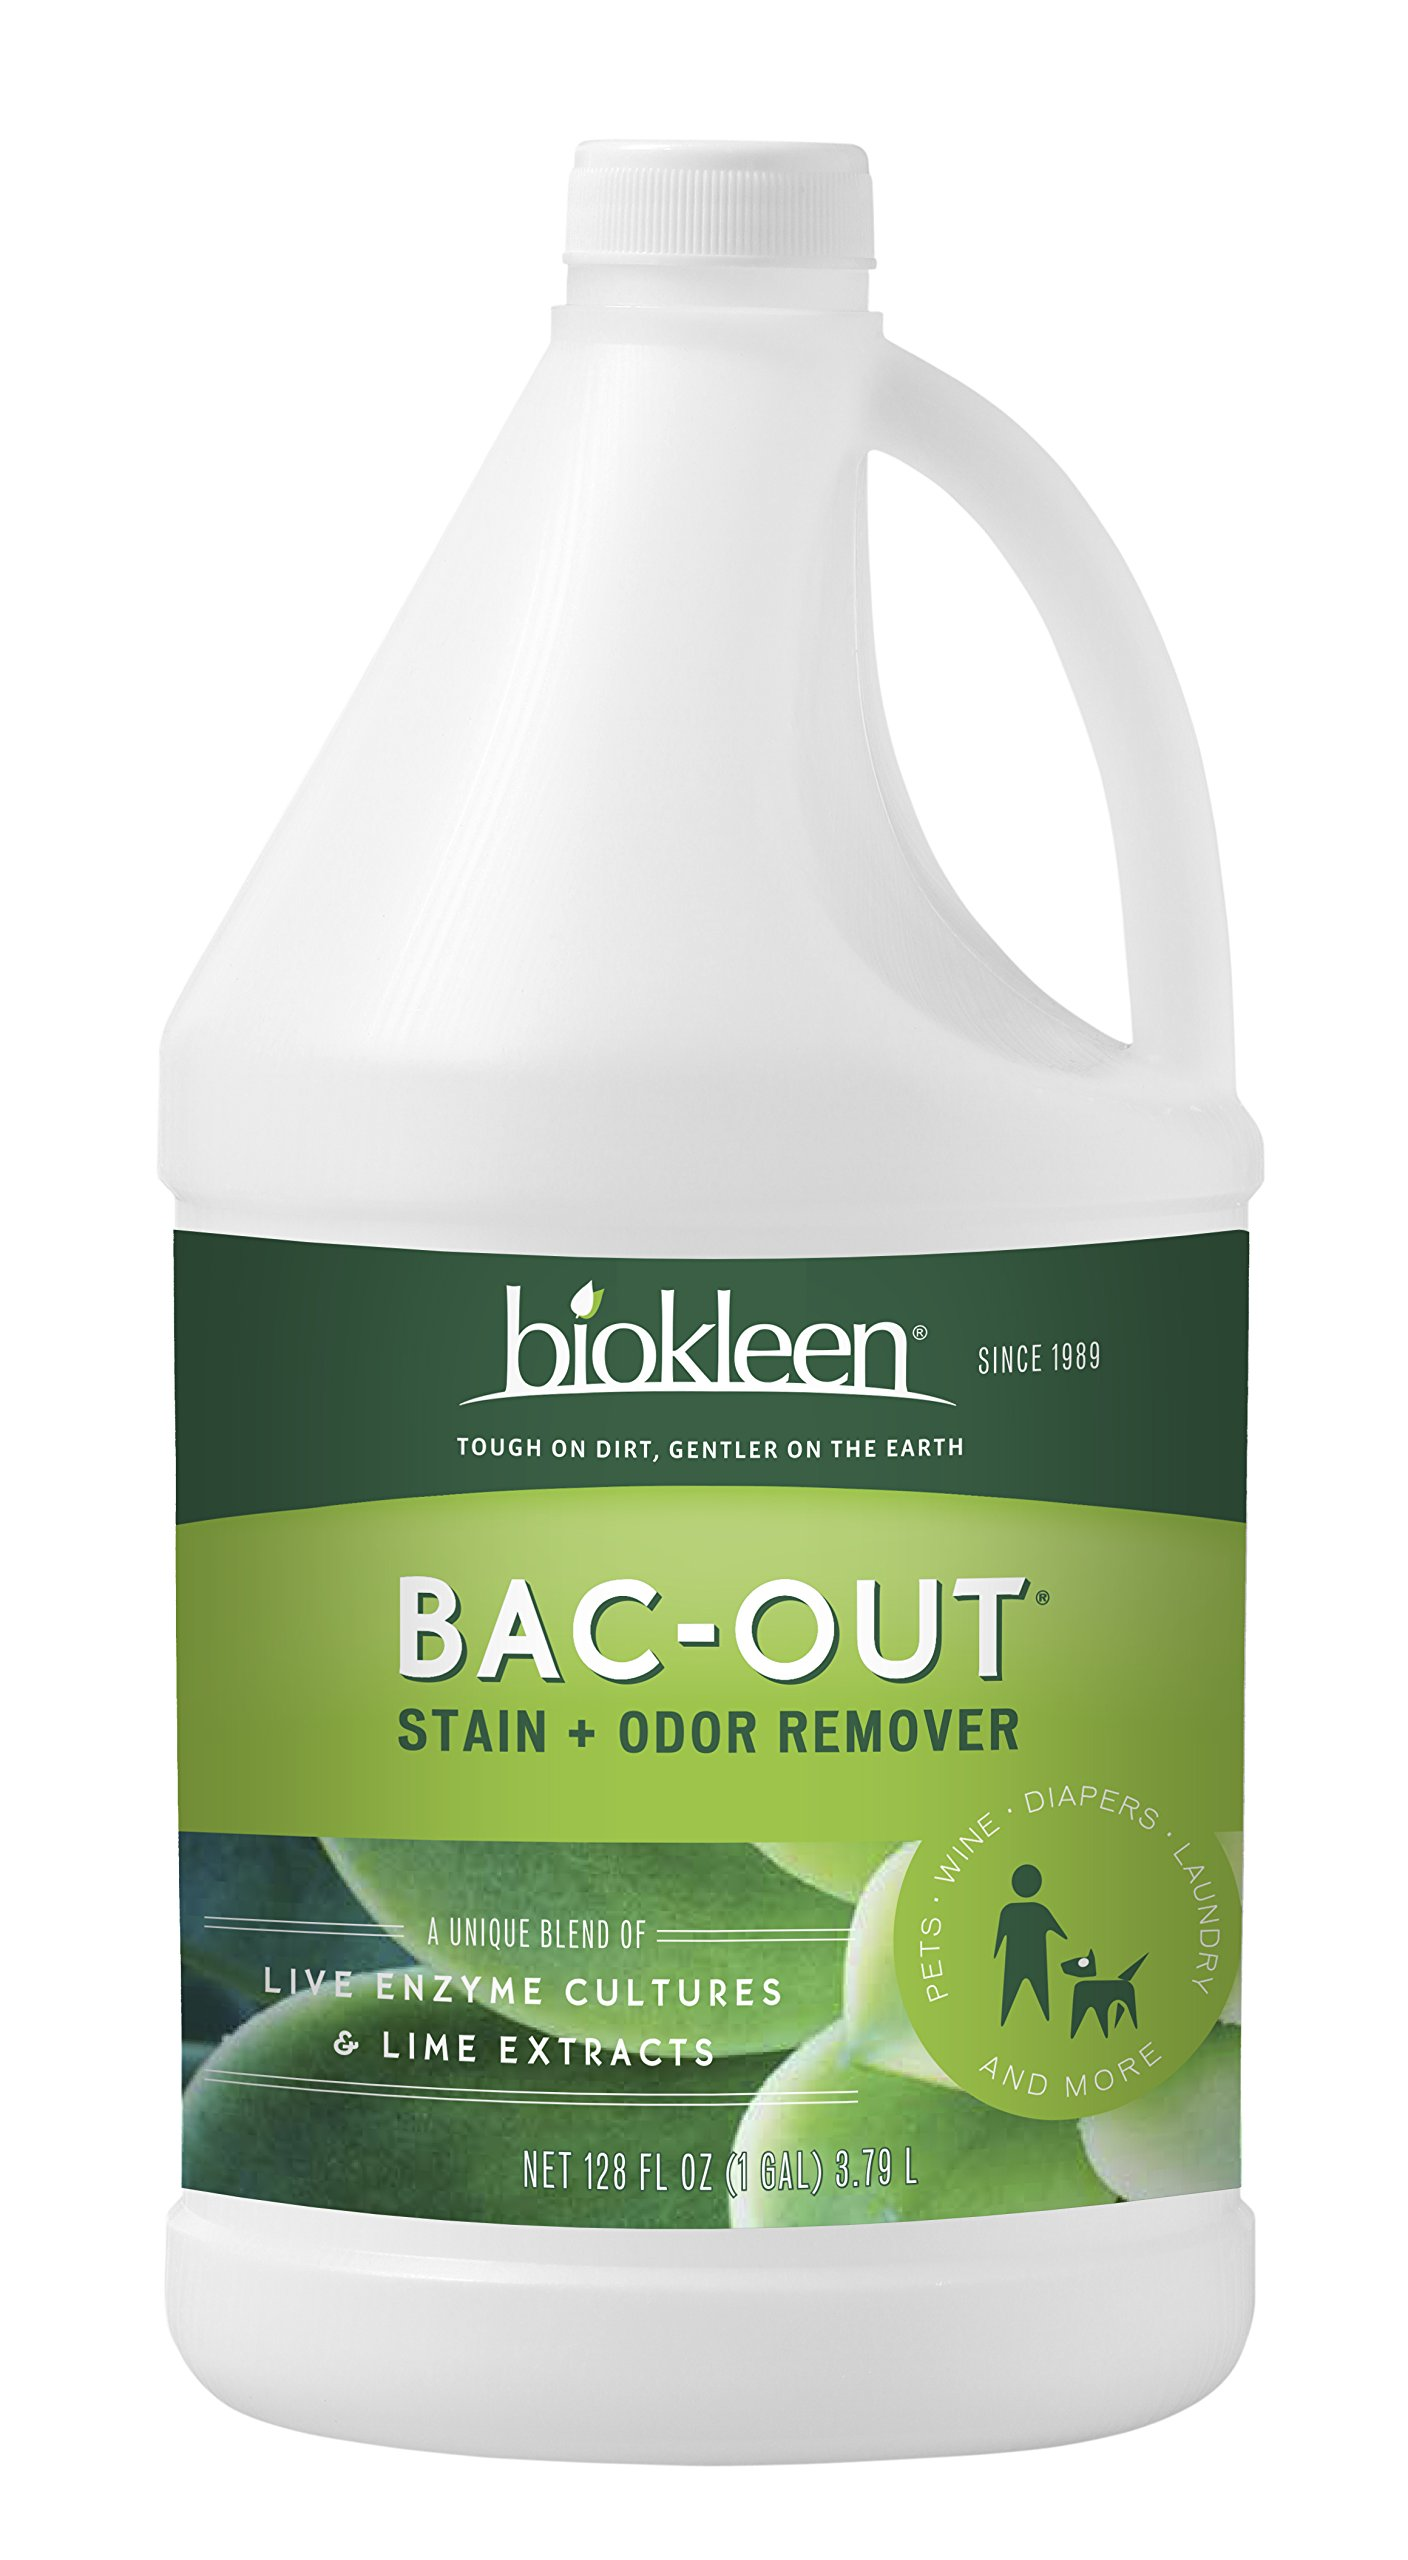 Biokleen Bac-Out Stain+Odor Remover, Destroys Stains & Odors Safely, for Pet Stains, Laundry, Diapers, Wine, Carpets, More, Eco-Friendly, Non-Toxic, Plant-Based, 128 Ounces (Pack of 4)